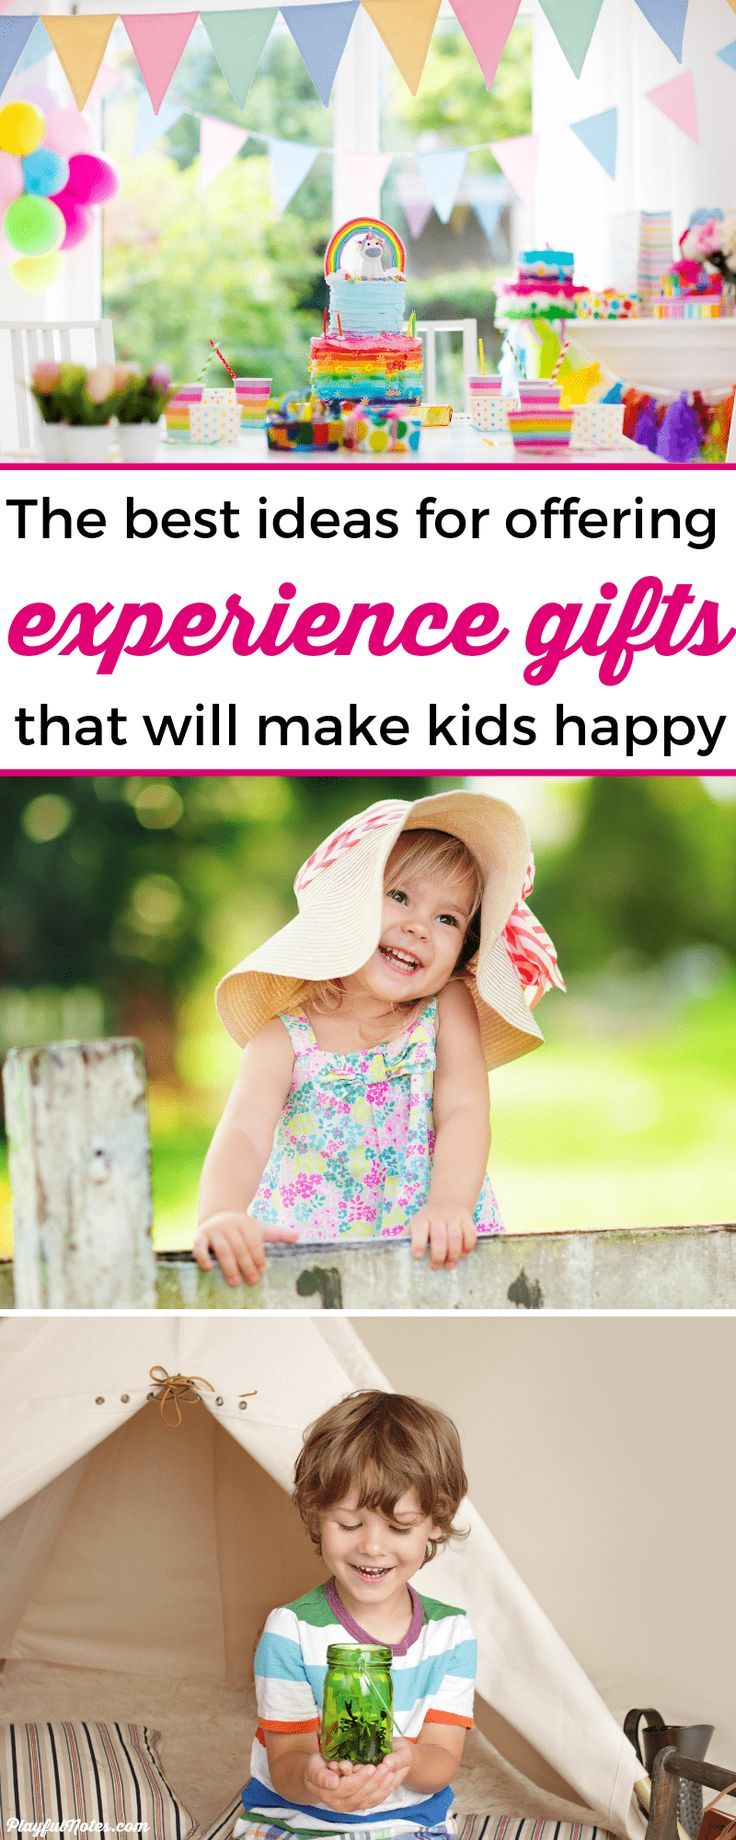 Check Out A List Of Awesome Ideas For Offering Experience Gifts To